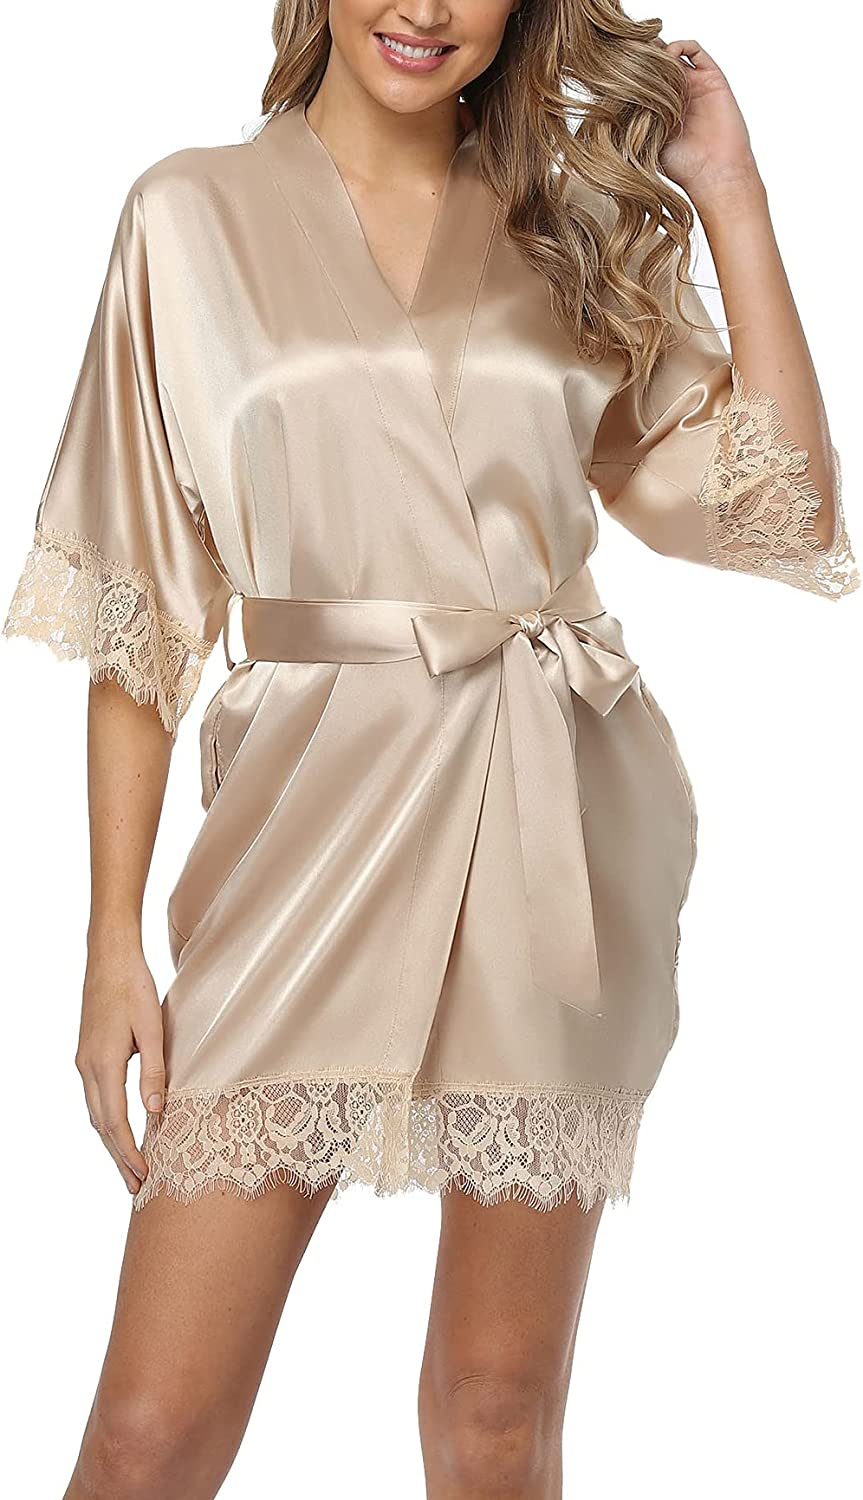 In stock Old-Times Women Satin Short Omaha Mall Robes for Bride Nigh Bridesmaid Sexy